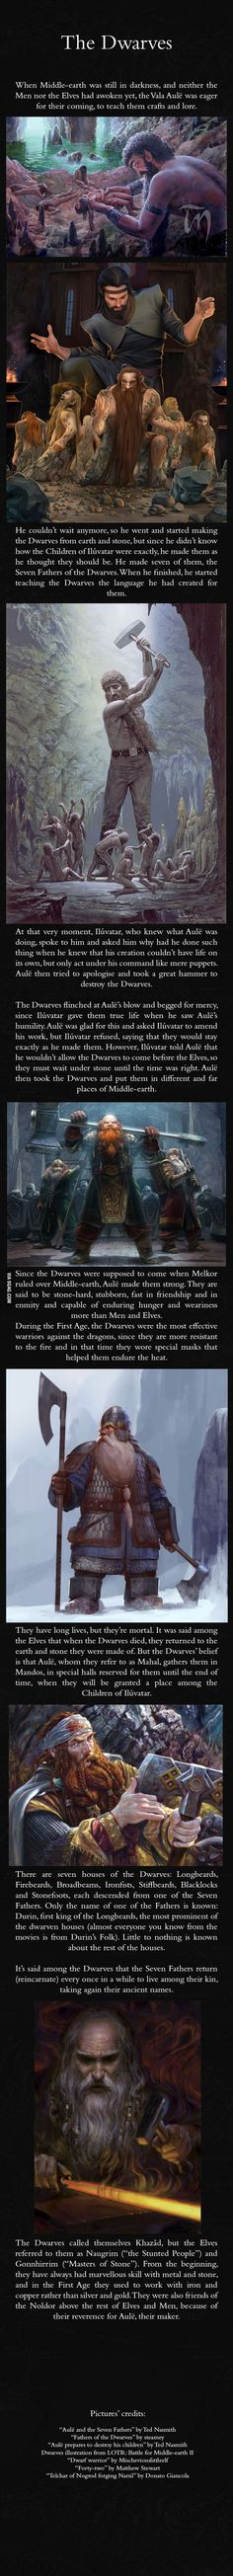 Dwarves - J.R.R. Tolkien's Mythology - 9GAG